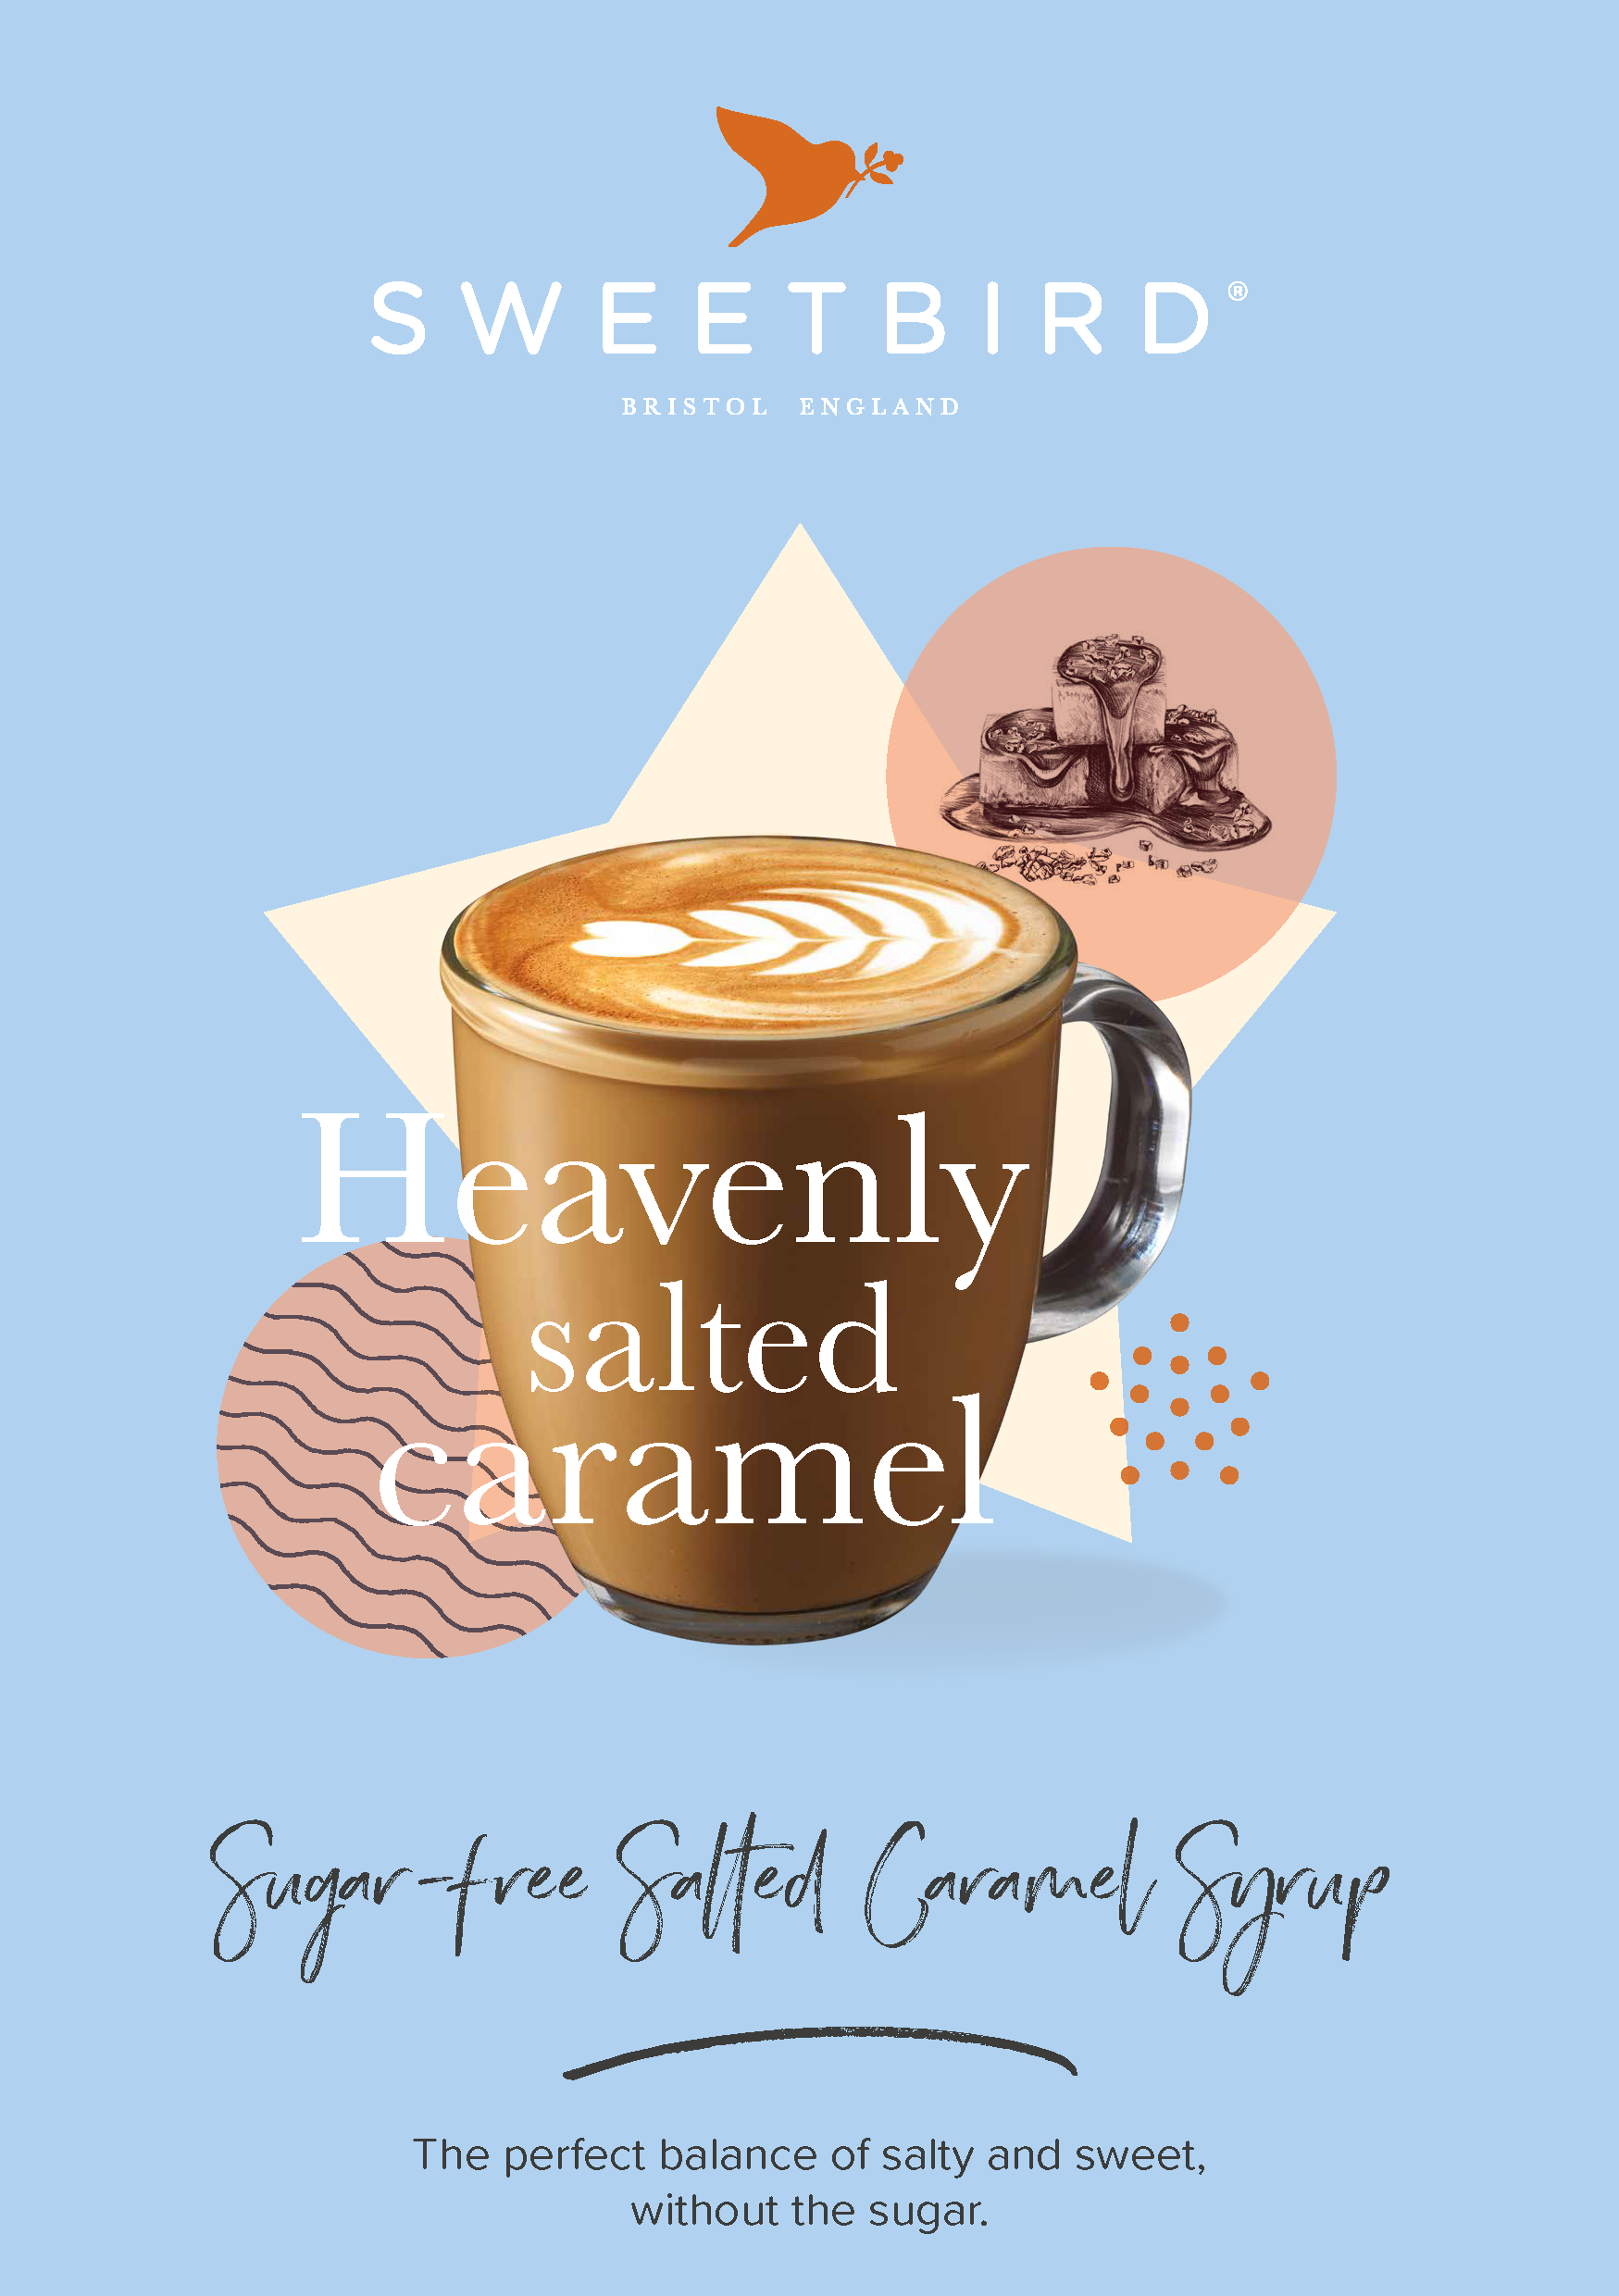 Sweetbird Sugar-free Salted Caramel Syrup Fact Sheet